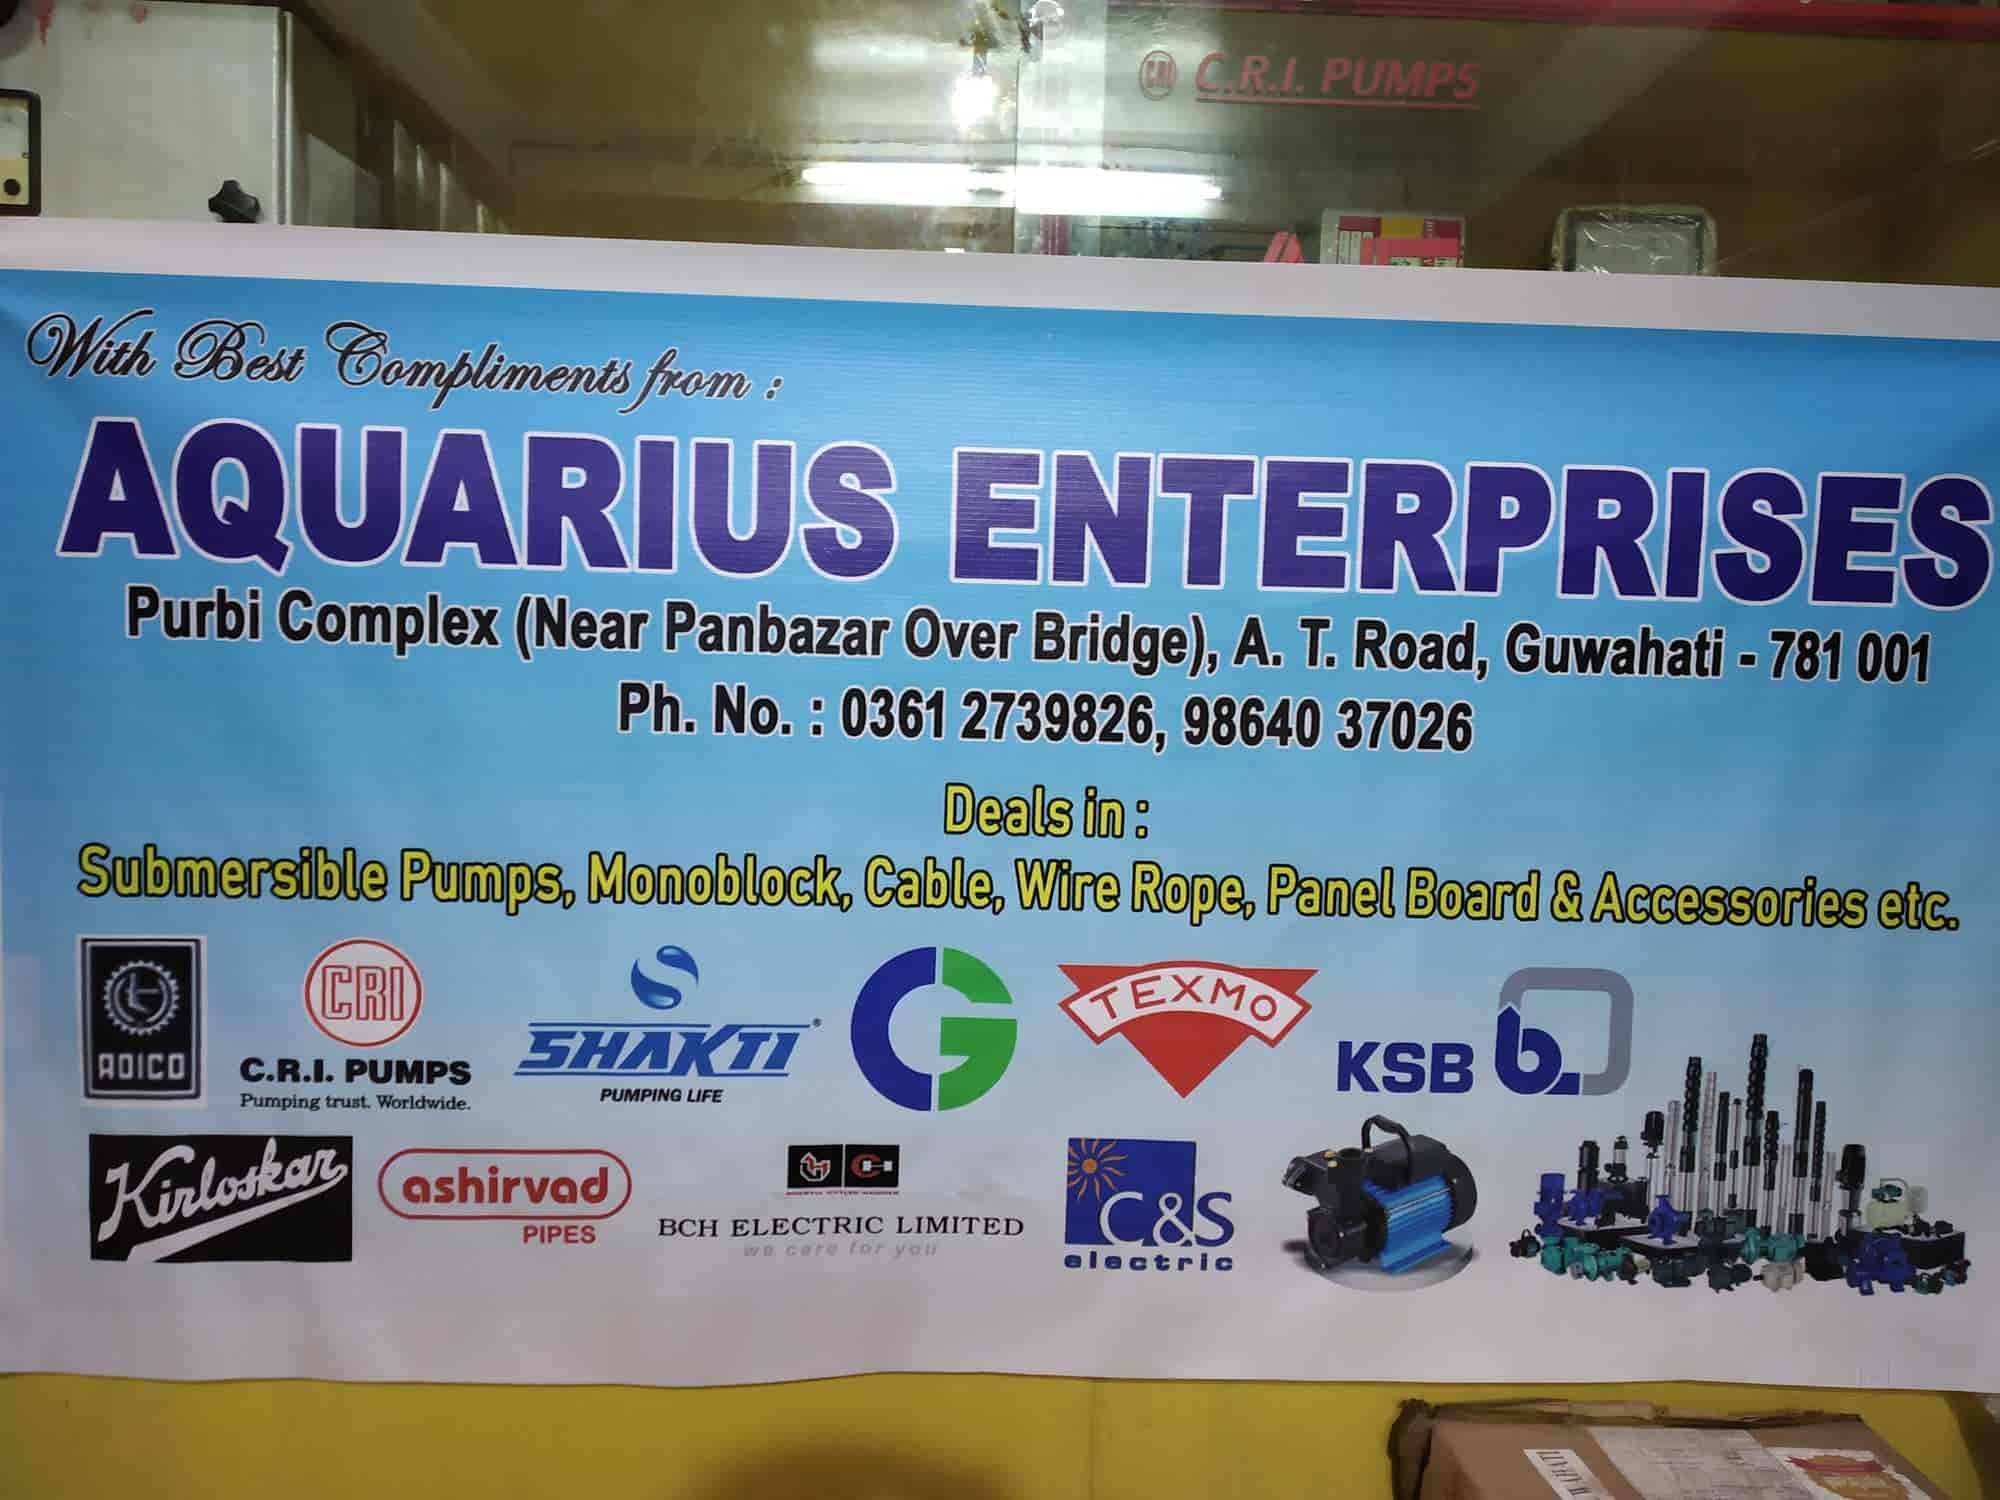 Aquarius Enterprises